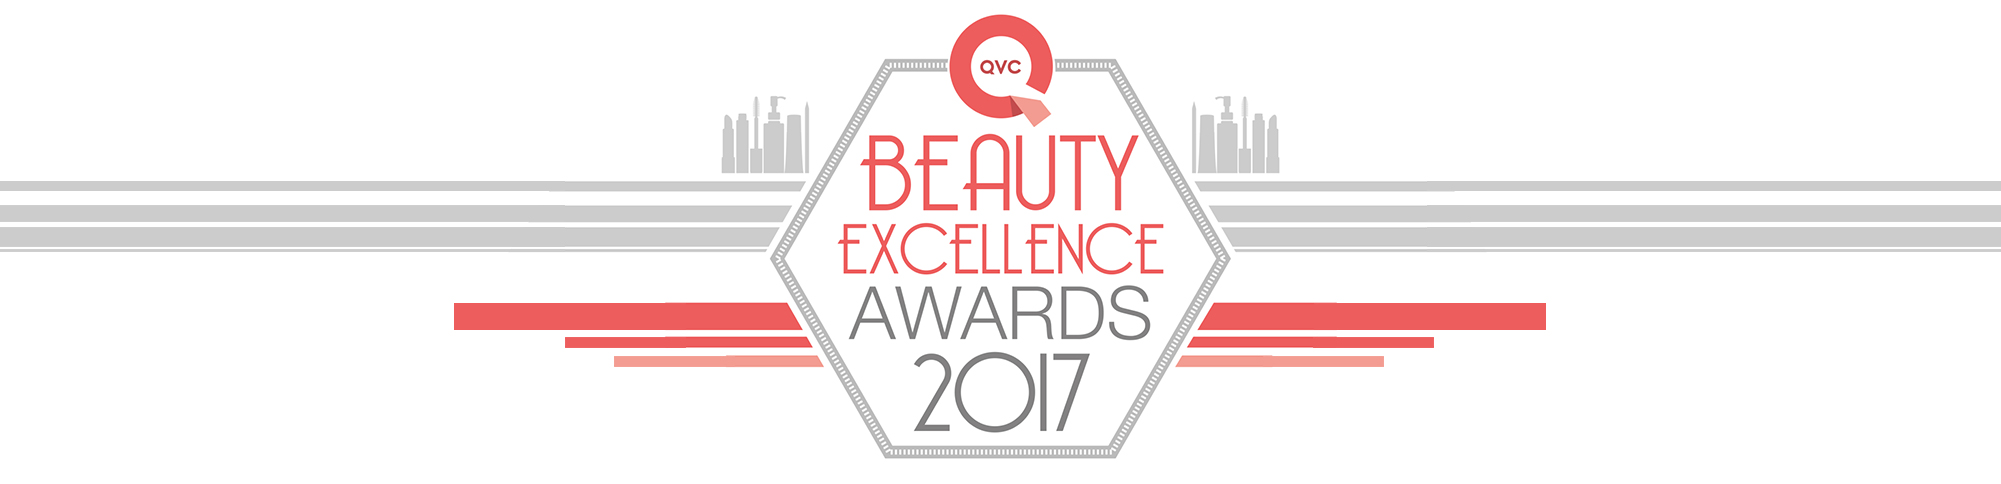 Beauty Excellence Awards